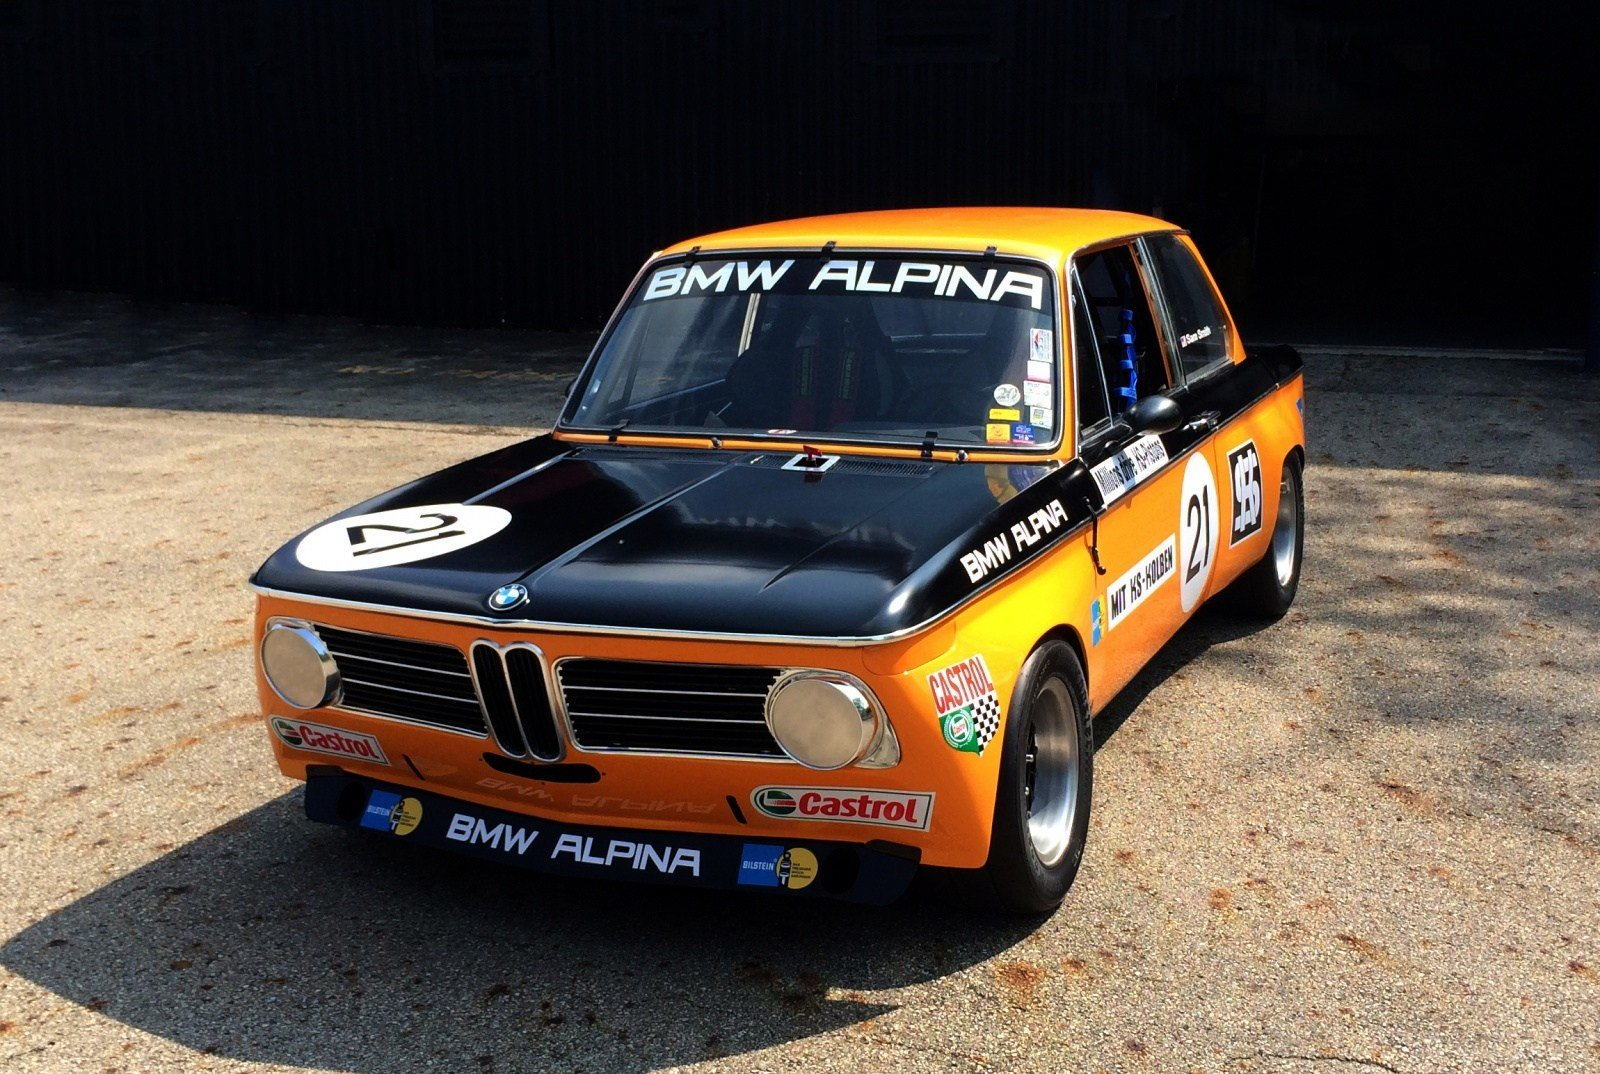 Latest 1970 Bmw 2002Ti Alpina Race Car Speeddoctor Net Free Download